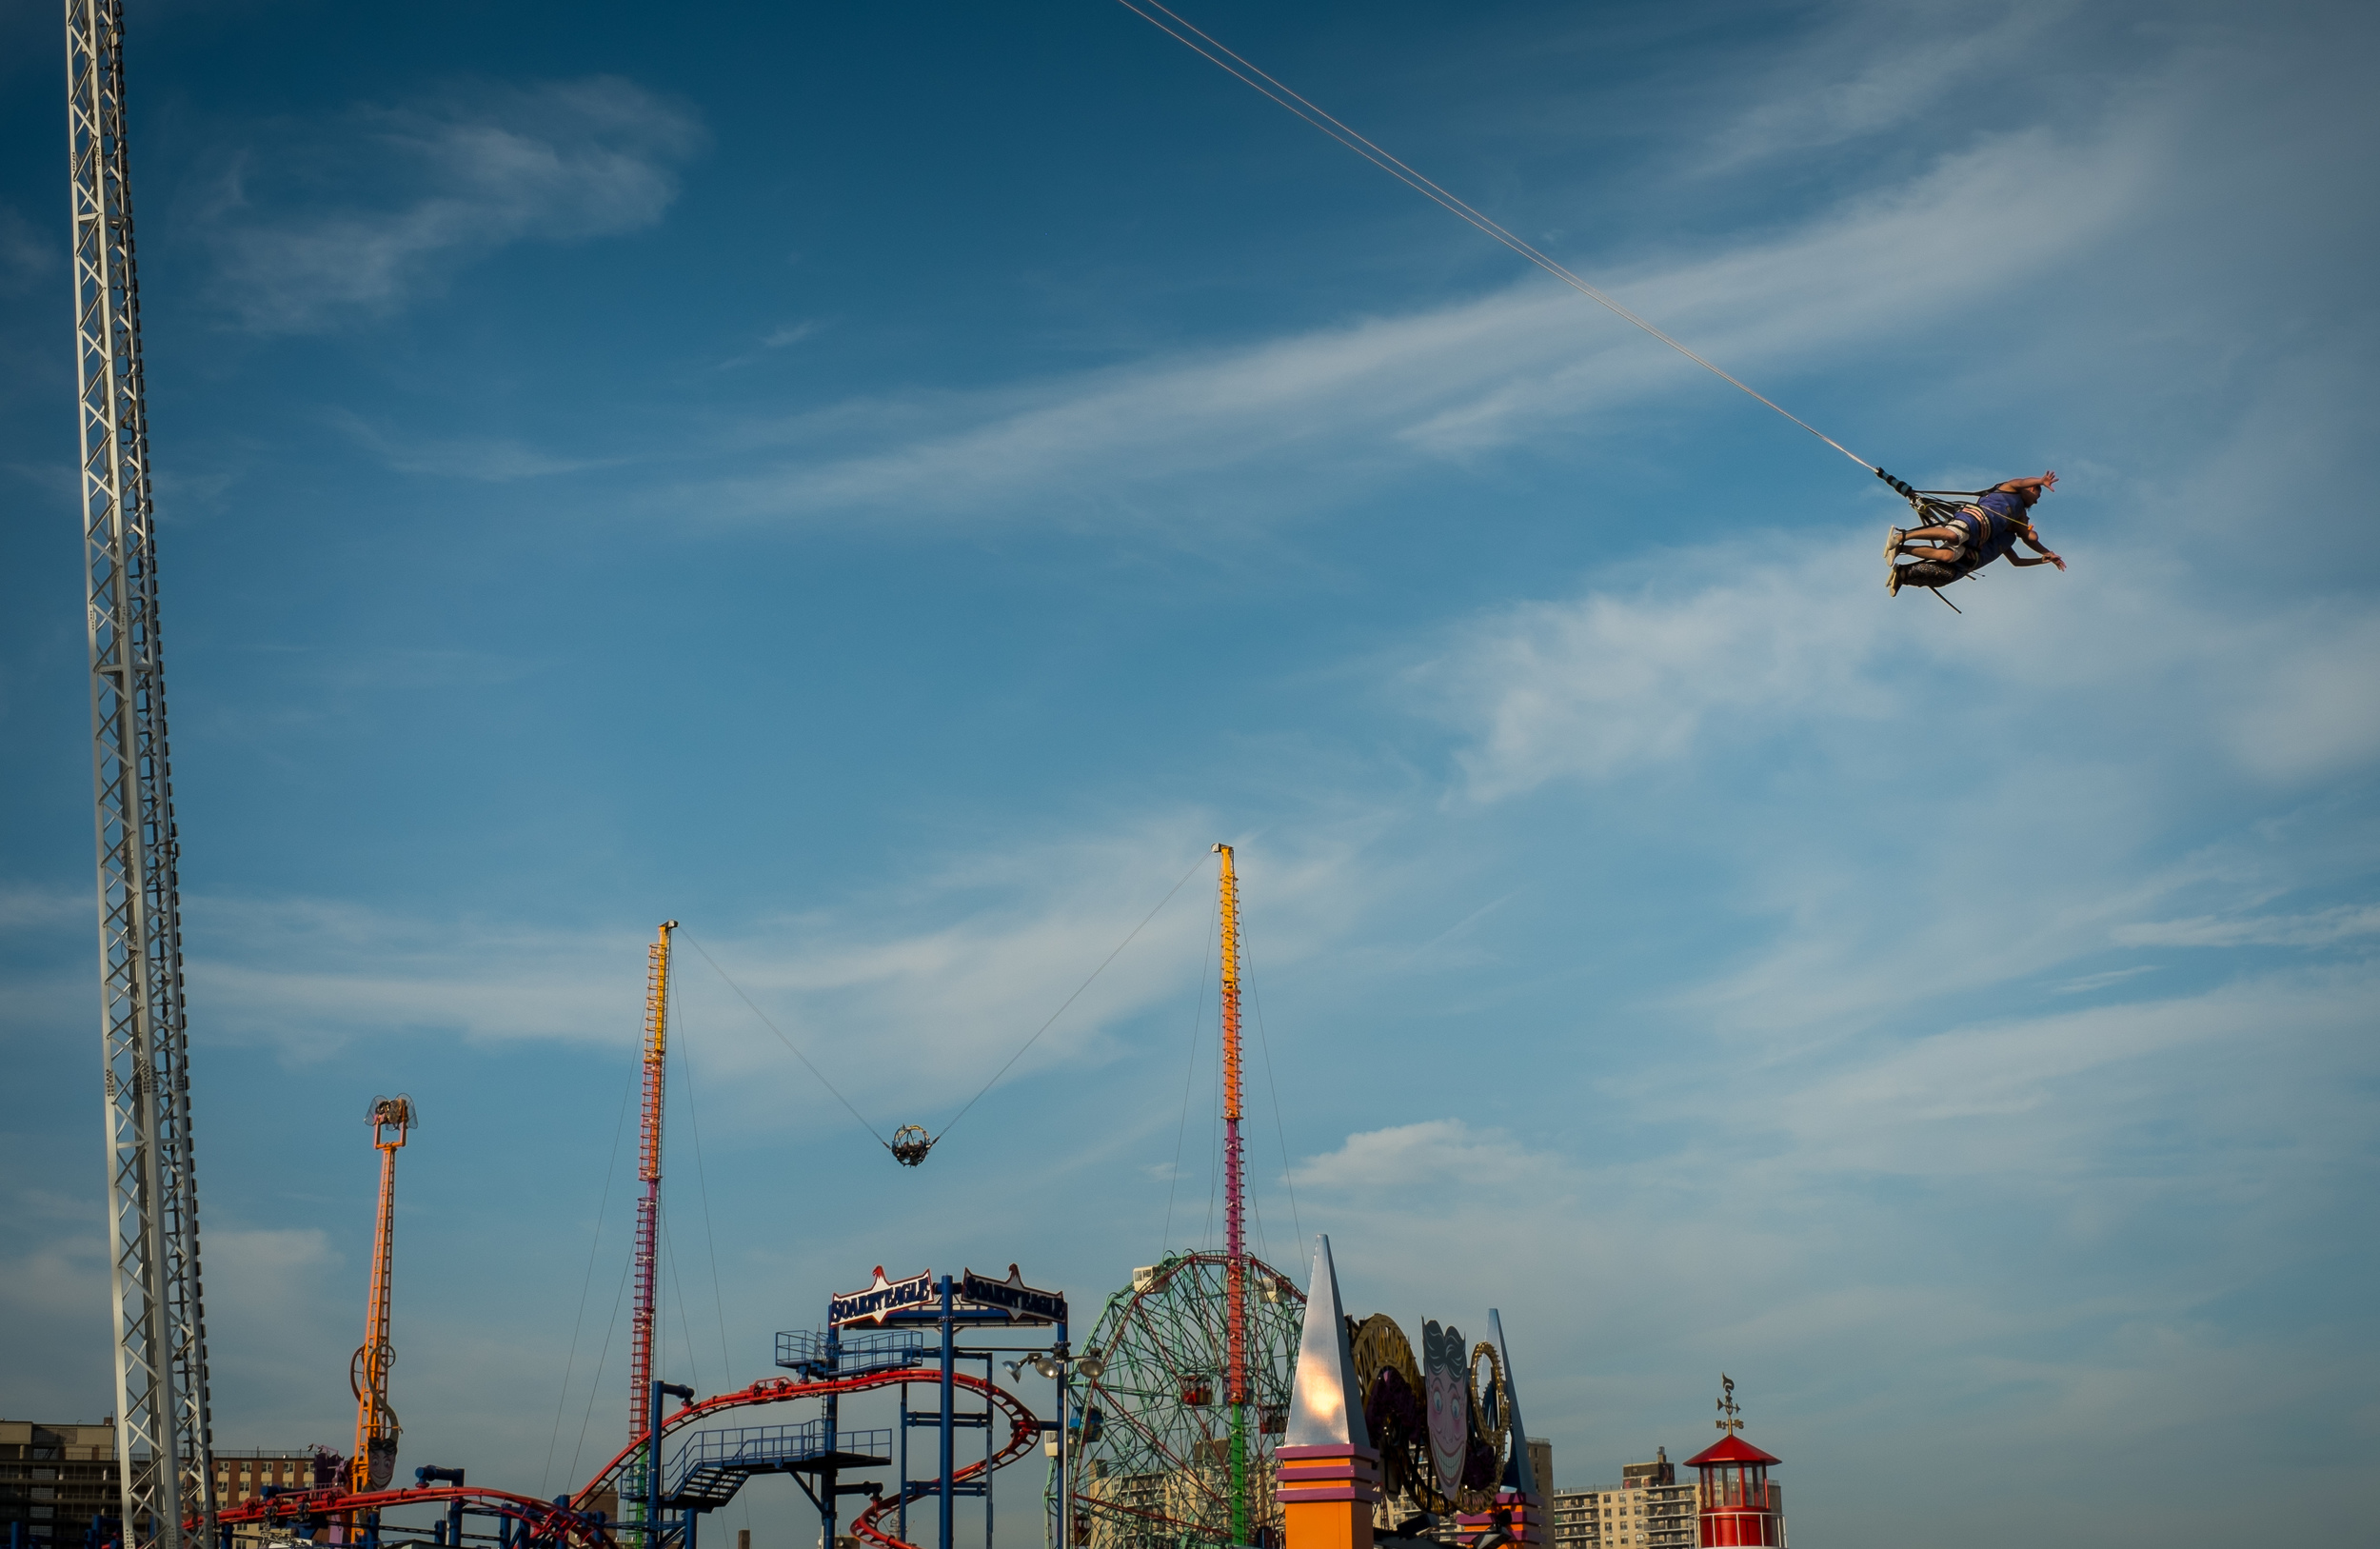 I used continuous shooting (burst mode) set to six frames per second (max for this camera) to capture this photo in Coney Island. 1/300, f11 at ISO 200.